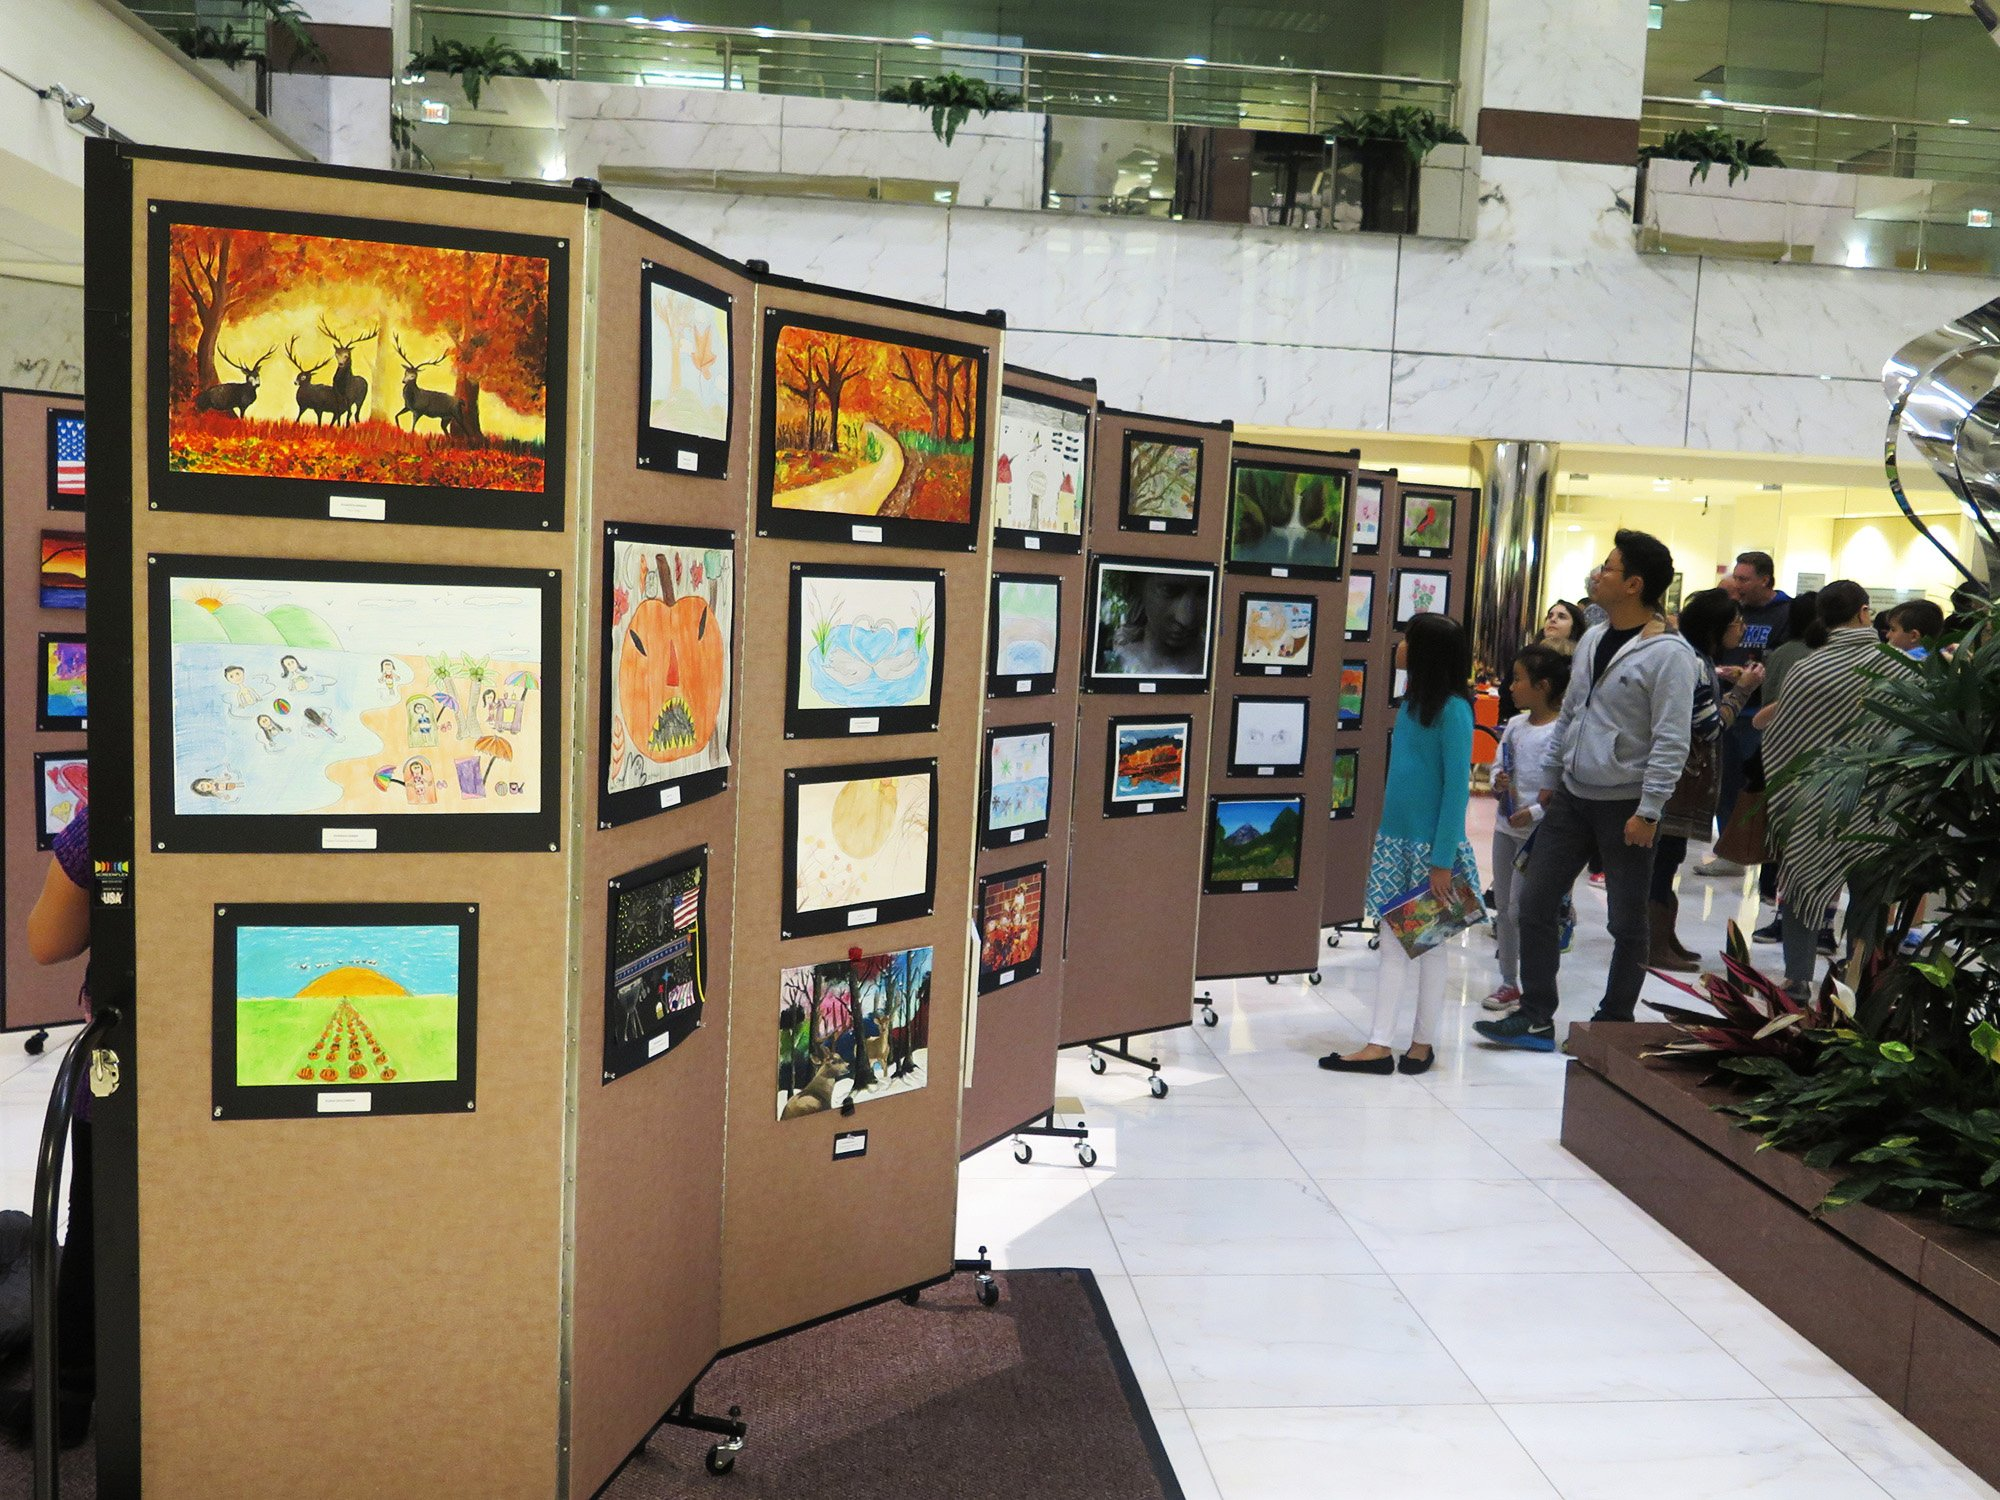 Movable art show display system allows a bank to showcase student artwork